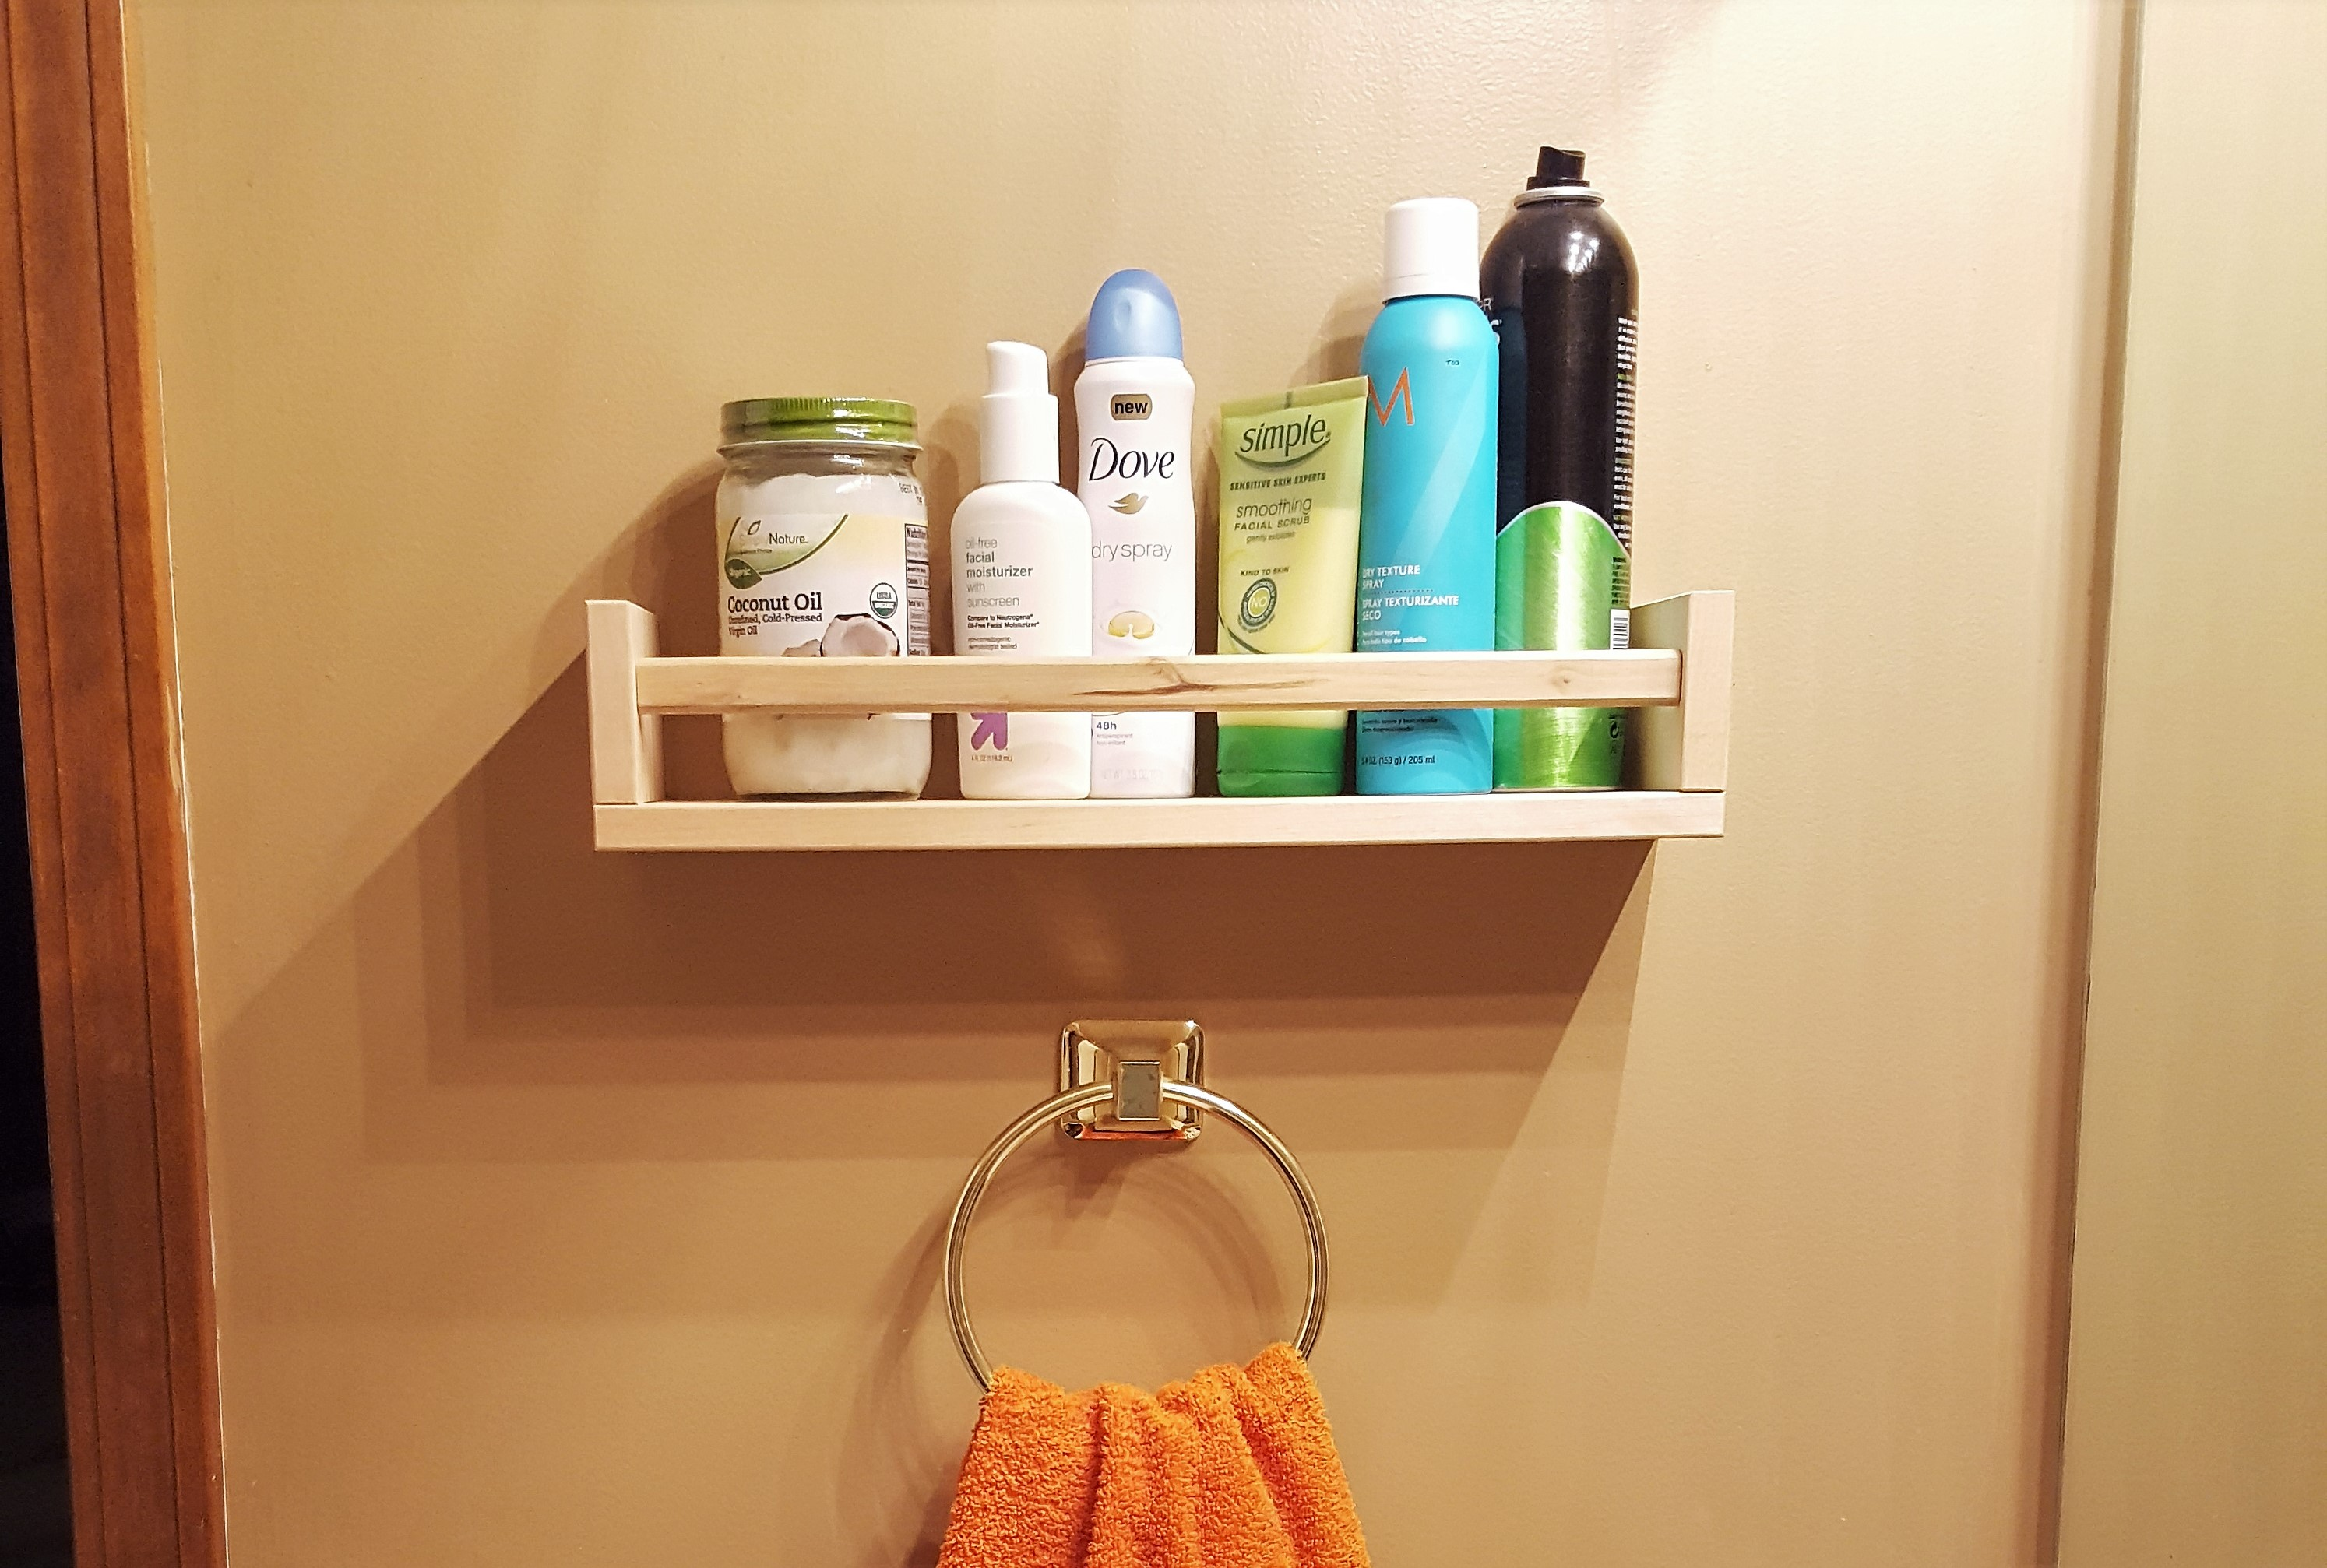 Fullsize Of Bathroom Shelf Rack